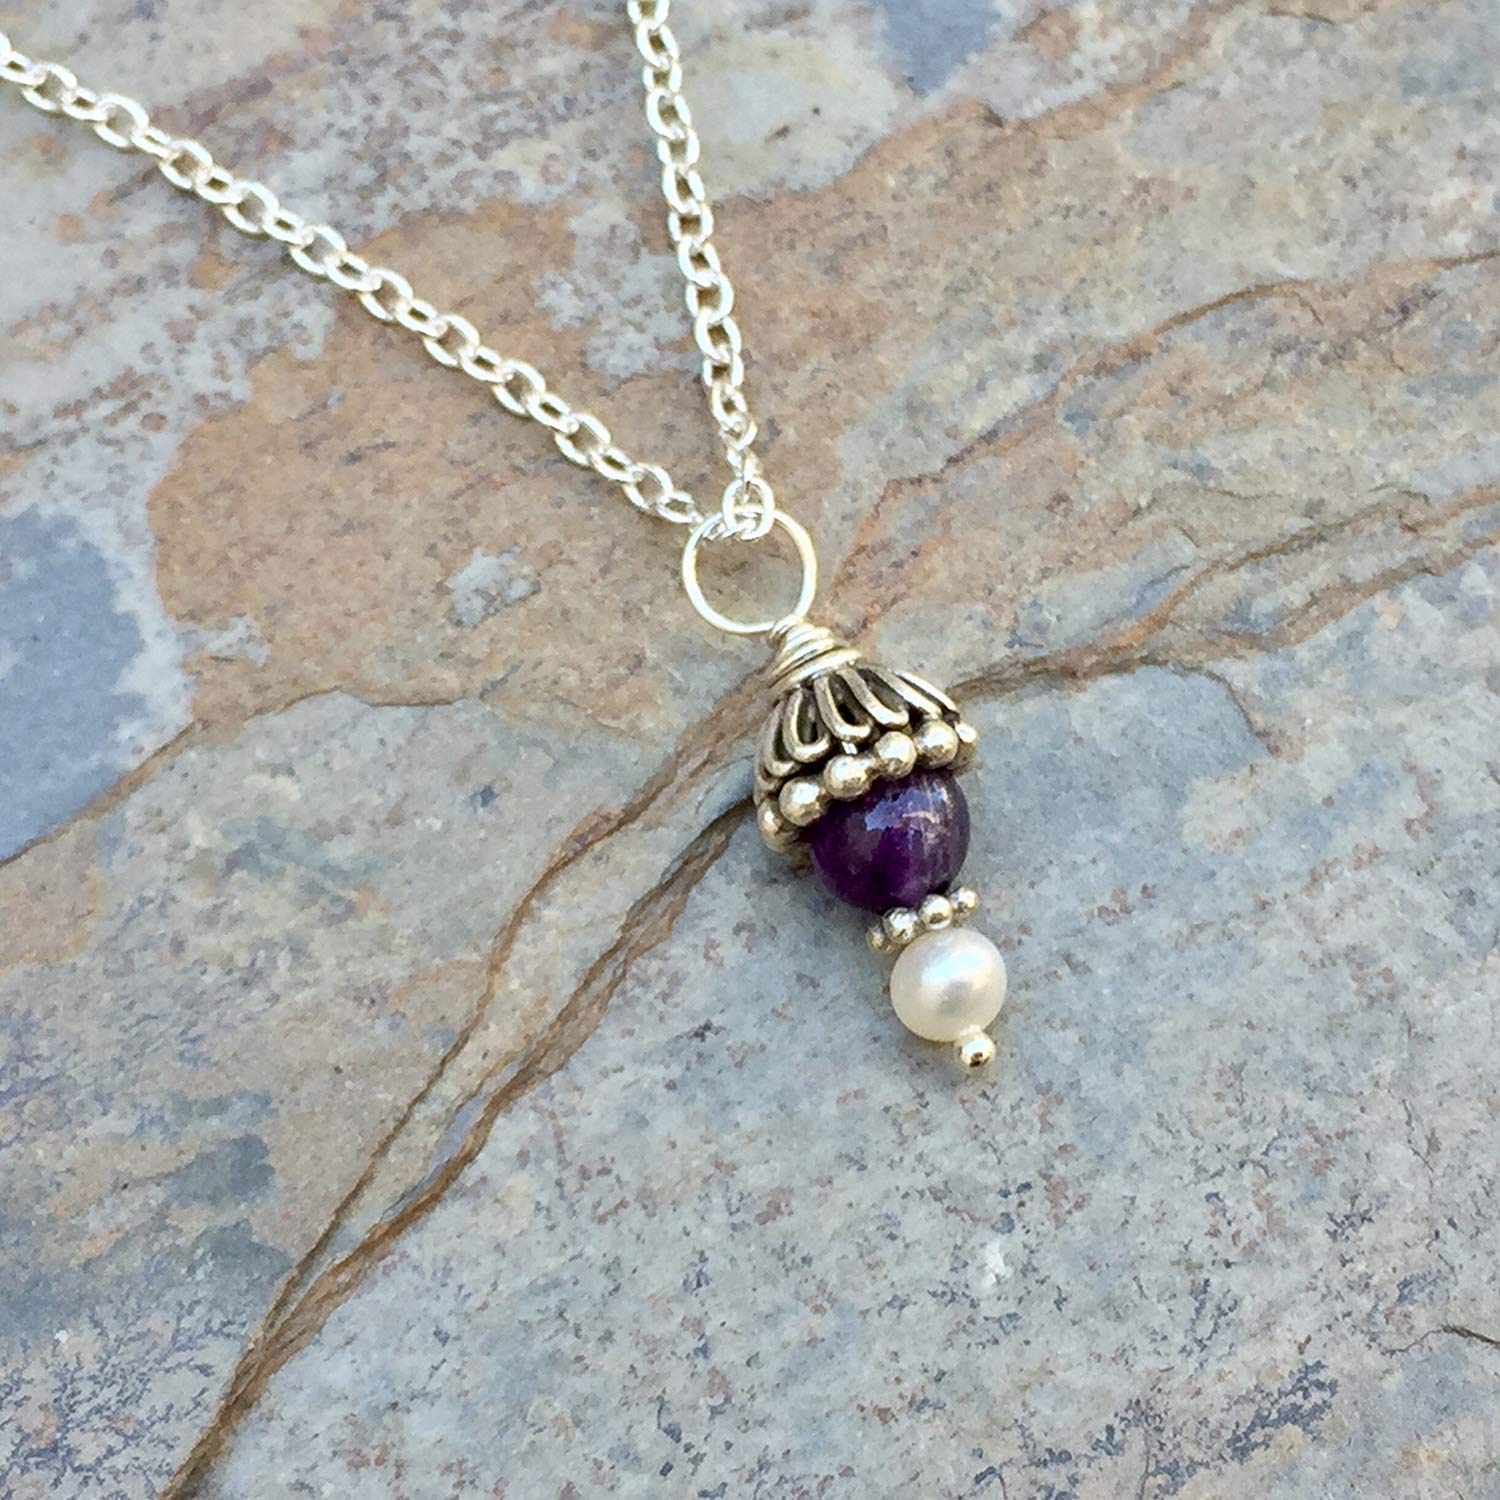 9a5d97478ac Get Quotations · Amethyst Pendant Necklace, Amethyst and Pearl Necklace on Sterling  Silver Chain